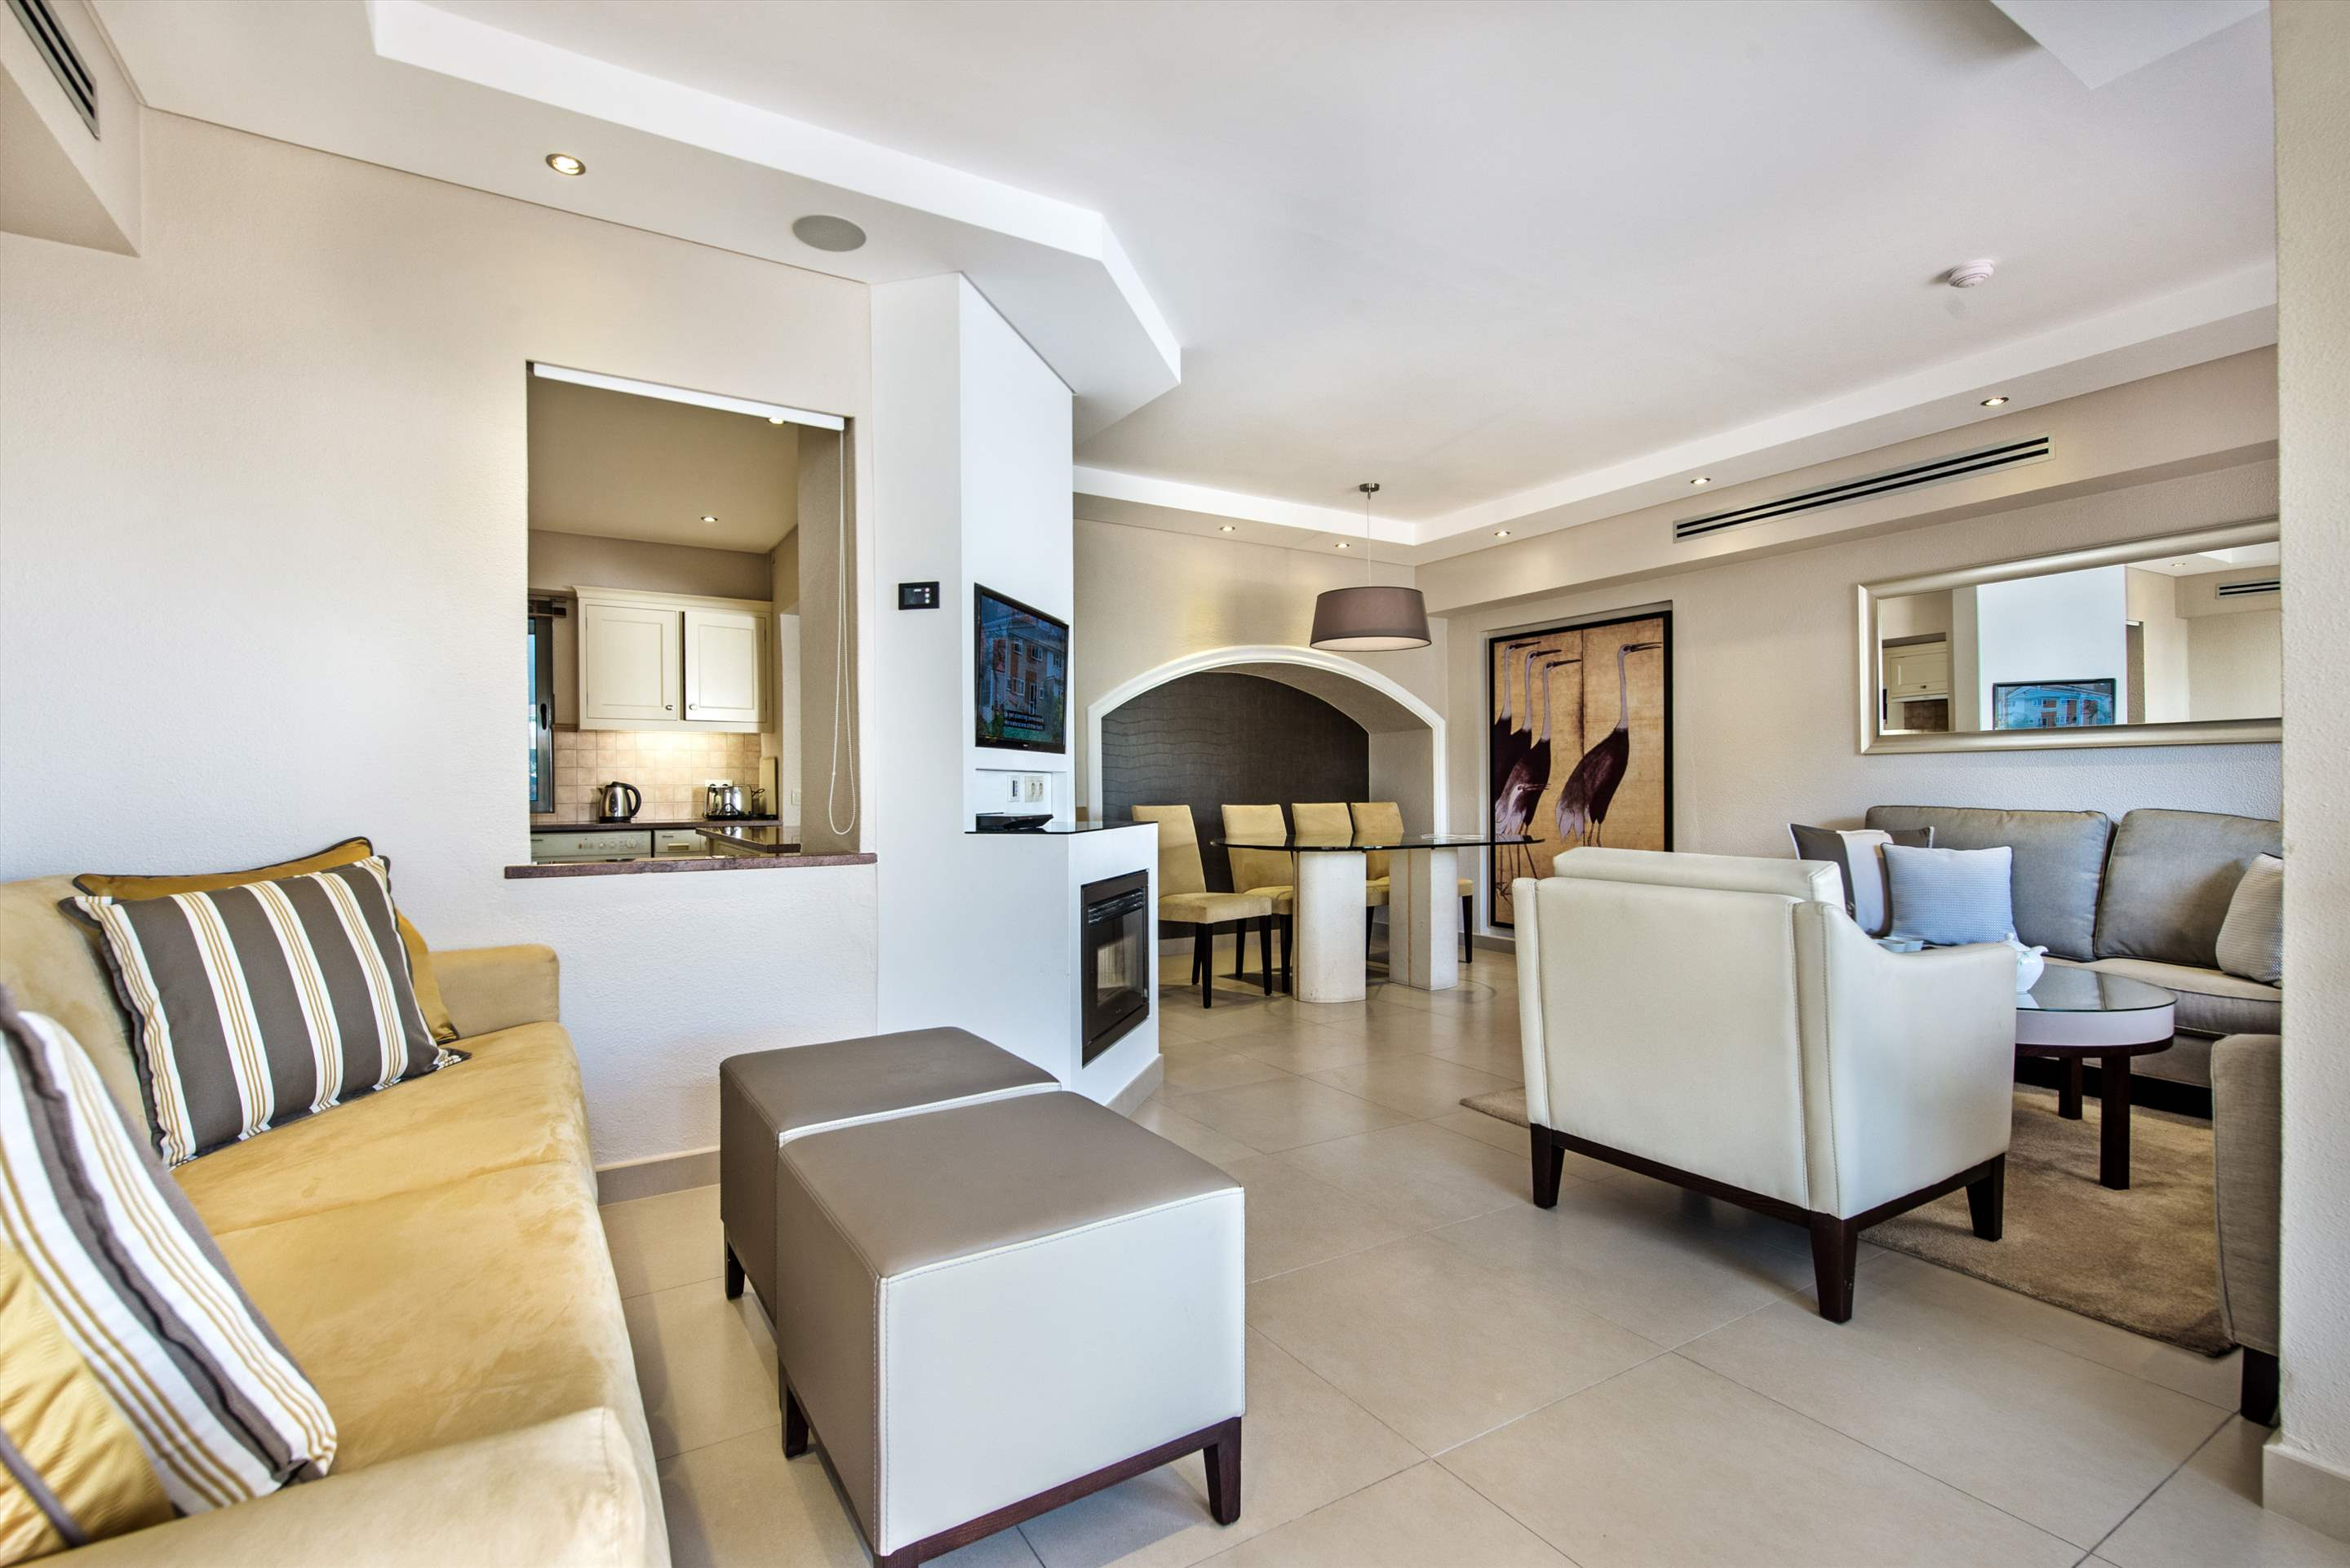 Four Seasons Country Club 1 bed, Superior - Sunday Arrival, 1 bedroom apartment in Four Seasons Country Club, Algarve Photo #4